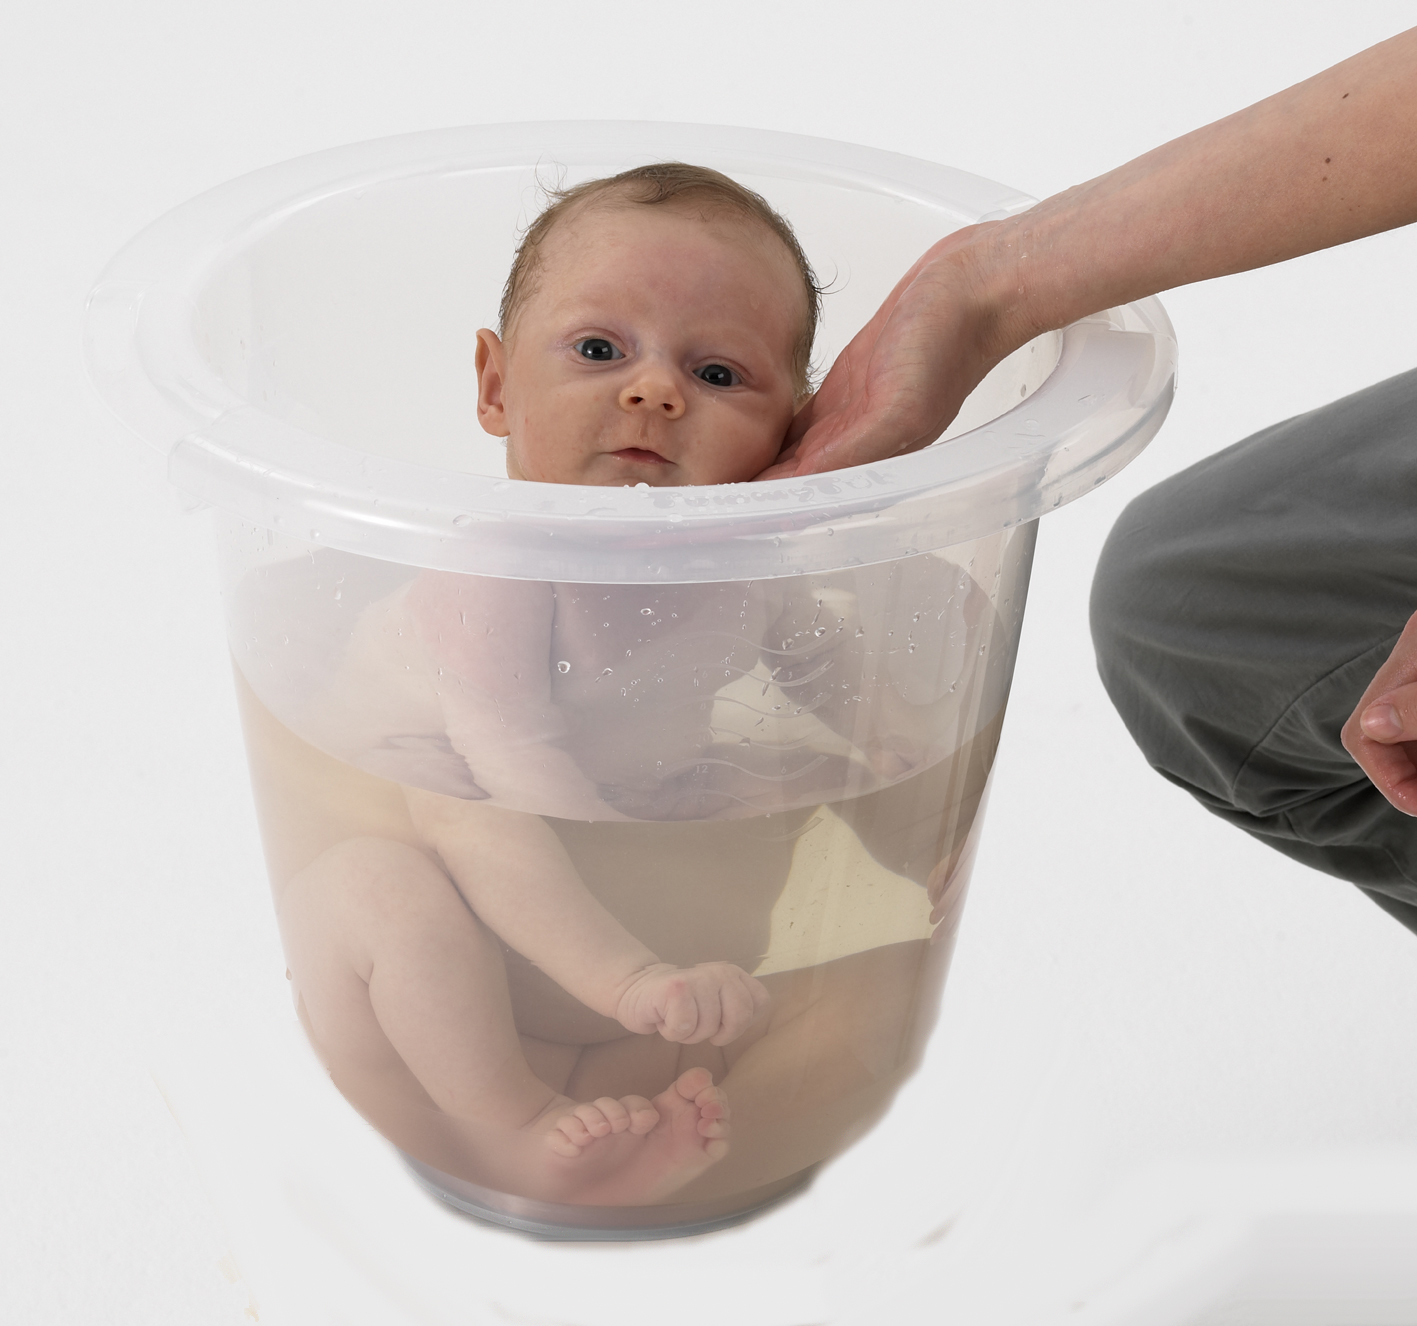 TummyTub- A Great Little Tub For Your Little One